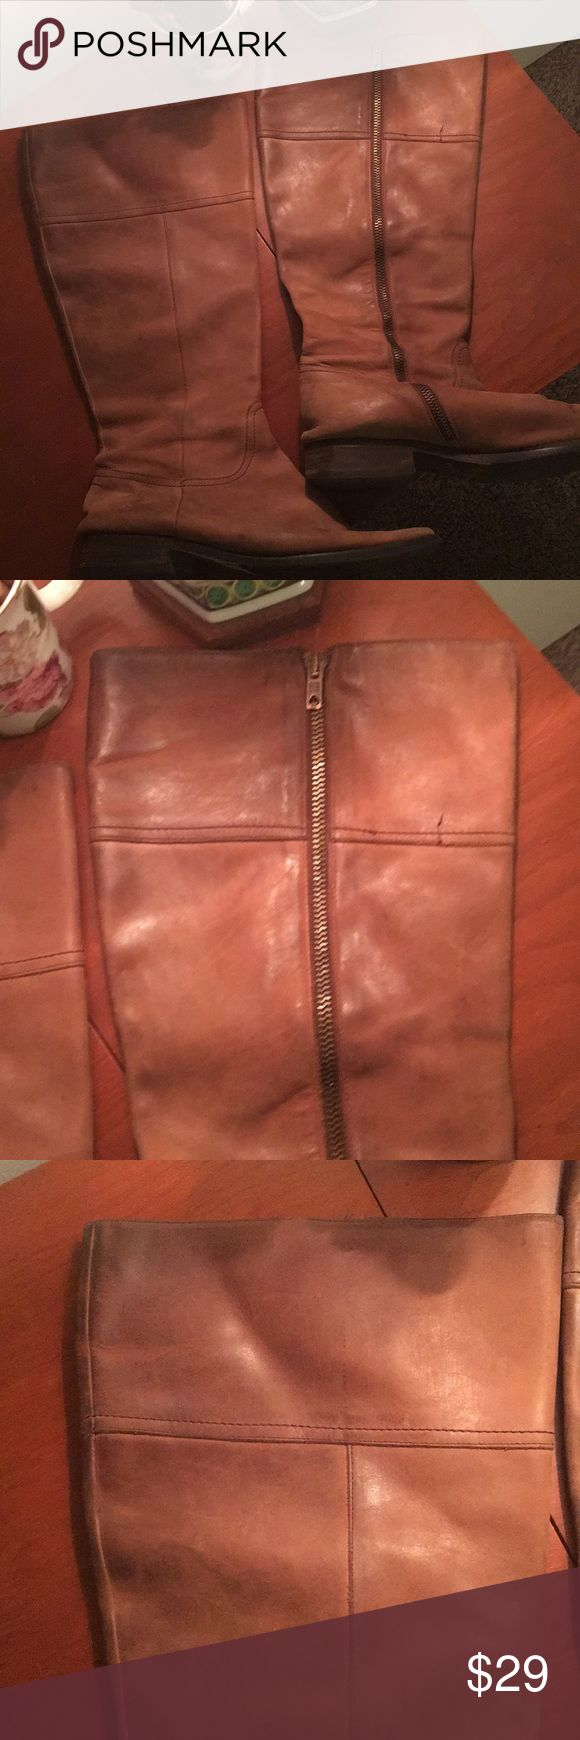 Well-loved leather JCREW tall boots. Inexpensive Well-loved JCREW Brown tall riding boots. Size 10 WIDE CALF. Soles replaced. In used condition.  Willing to sell for cheap to a good home. Cleaning these babies up with some leather cleaner would make a big difference! JCREW Shoes